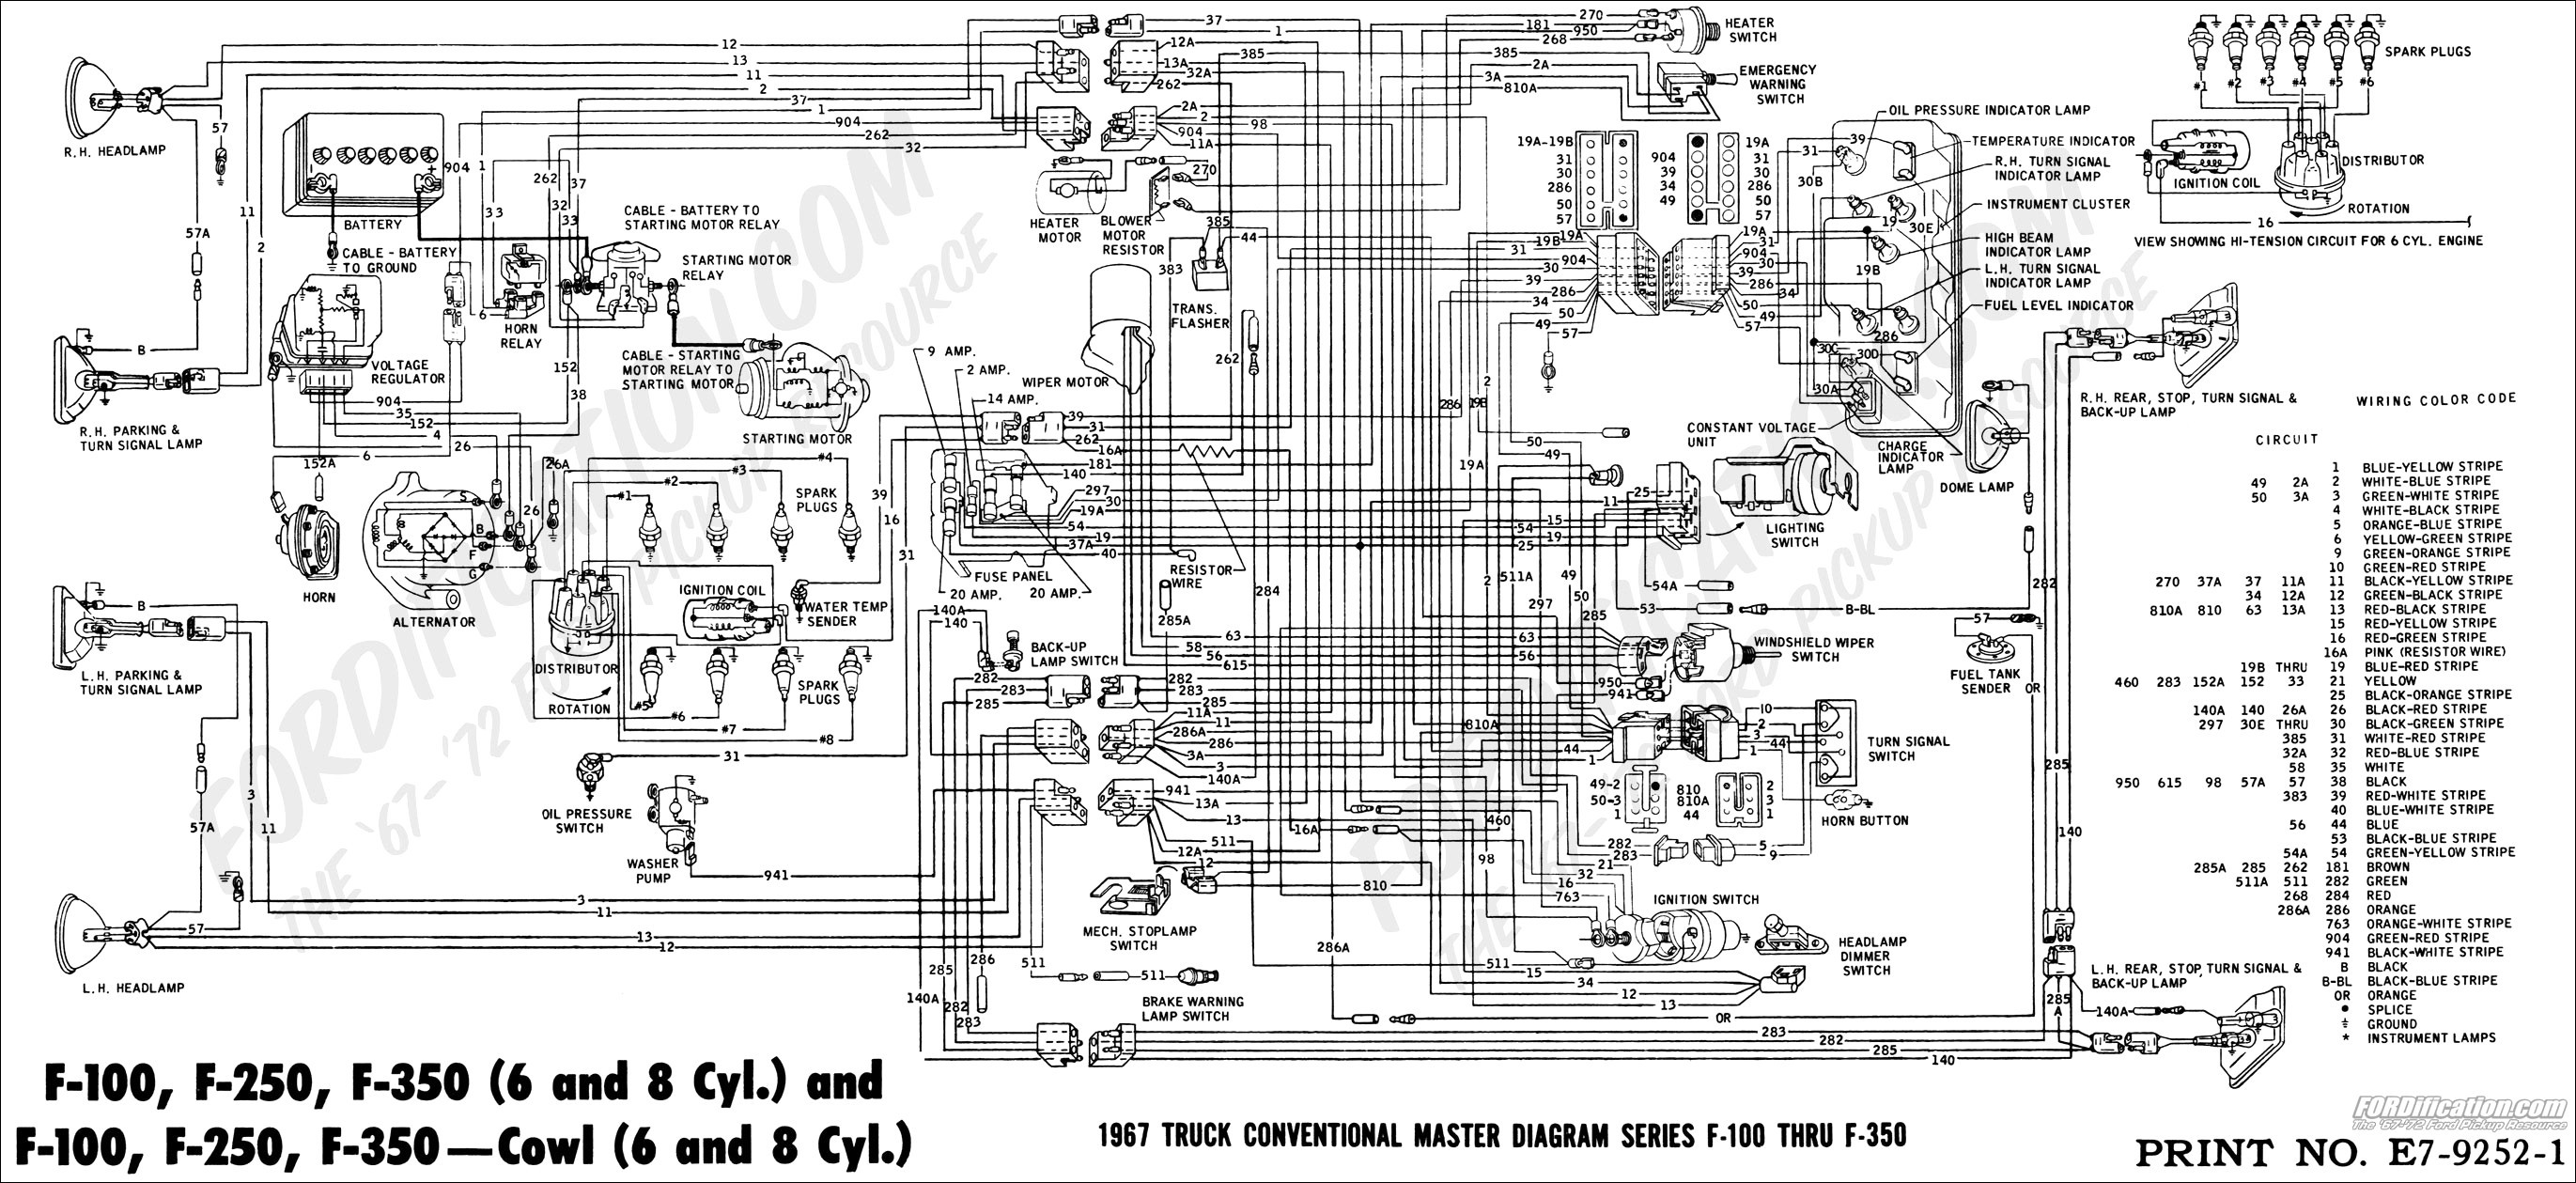 1990 ford f 150 engine diagram wiring diagram u2022 rh zerobin co 2005 F150 Wiring Diagram 2004 F150 Wiring Diagram